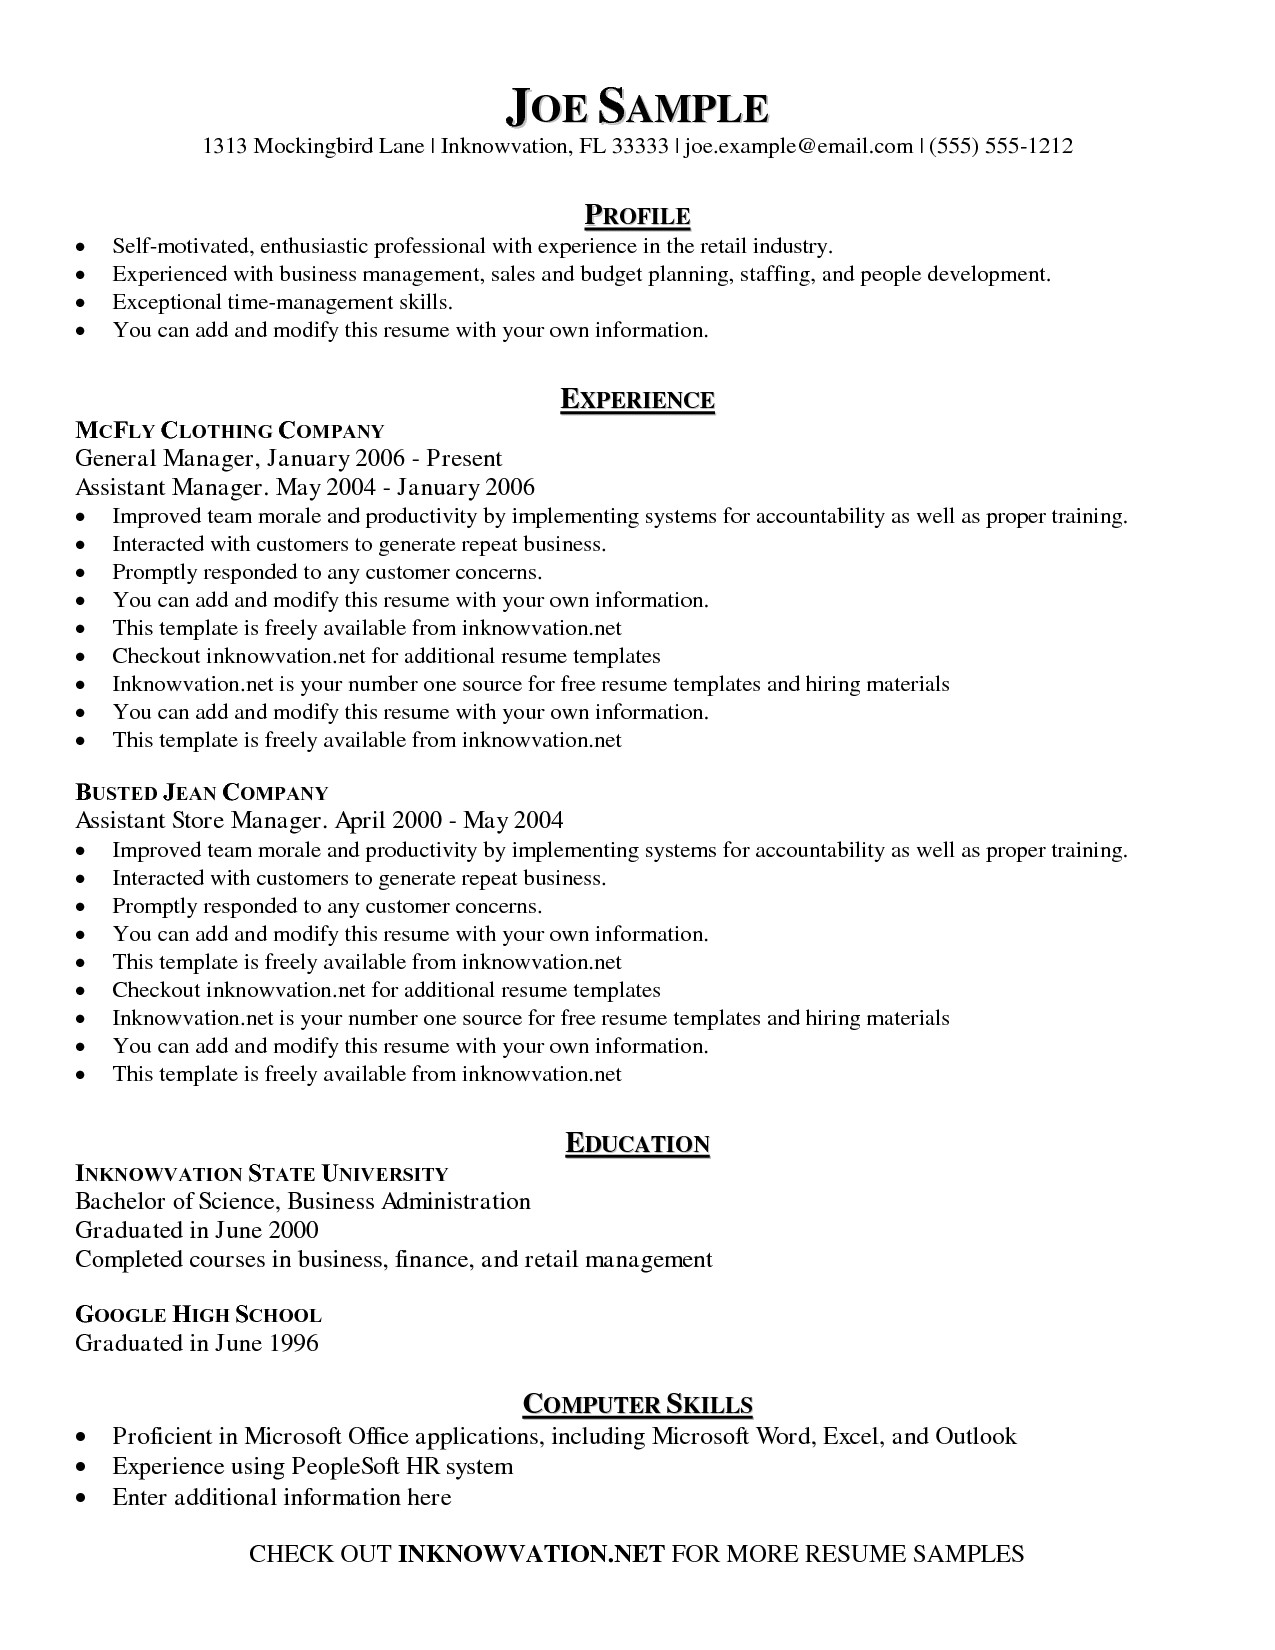 Reverse Chronological Resume Template Word - Chronological Resume format Template Inspirational Free Resume